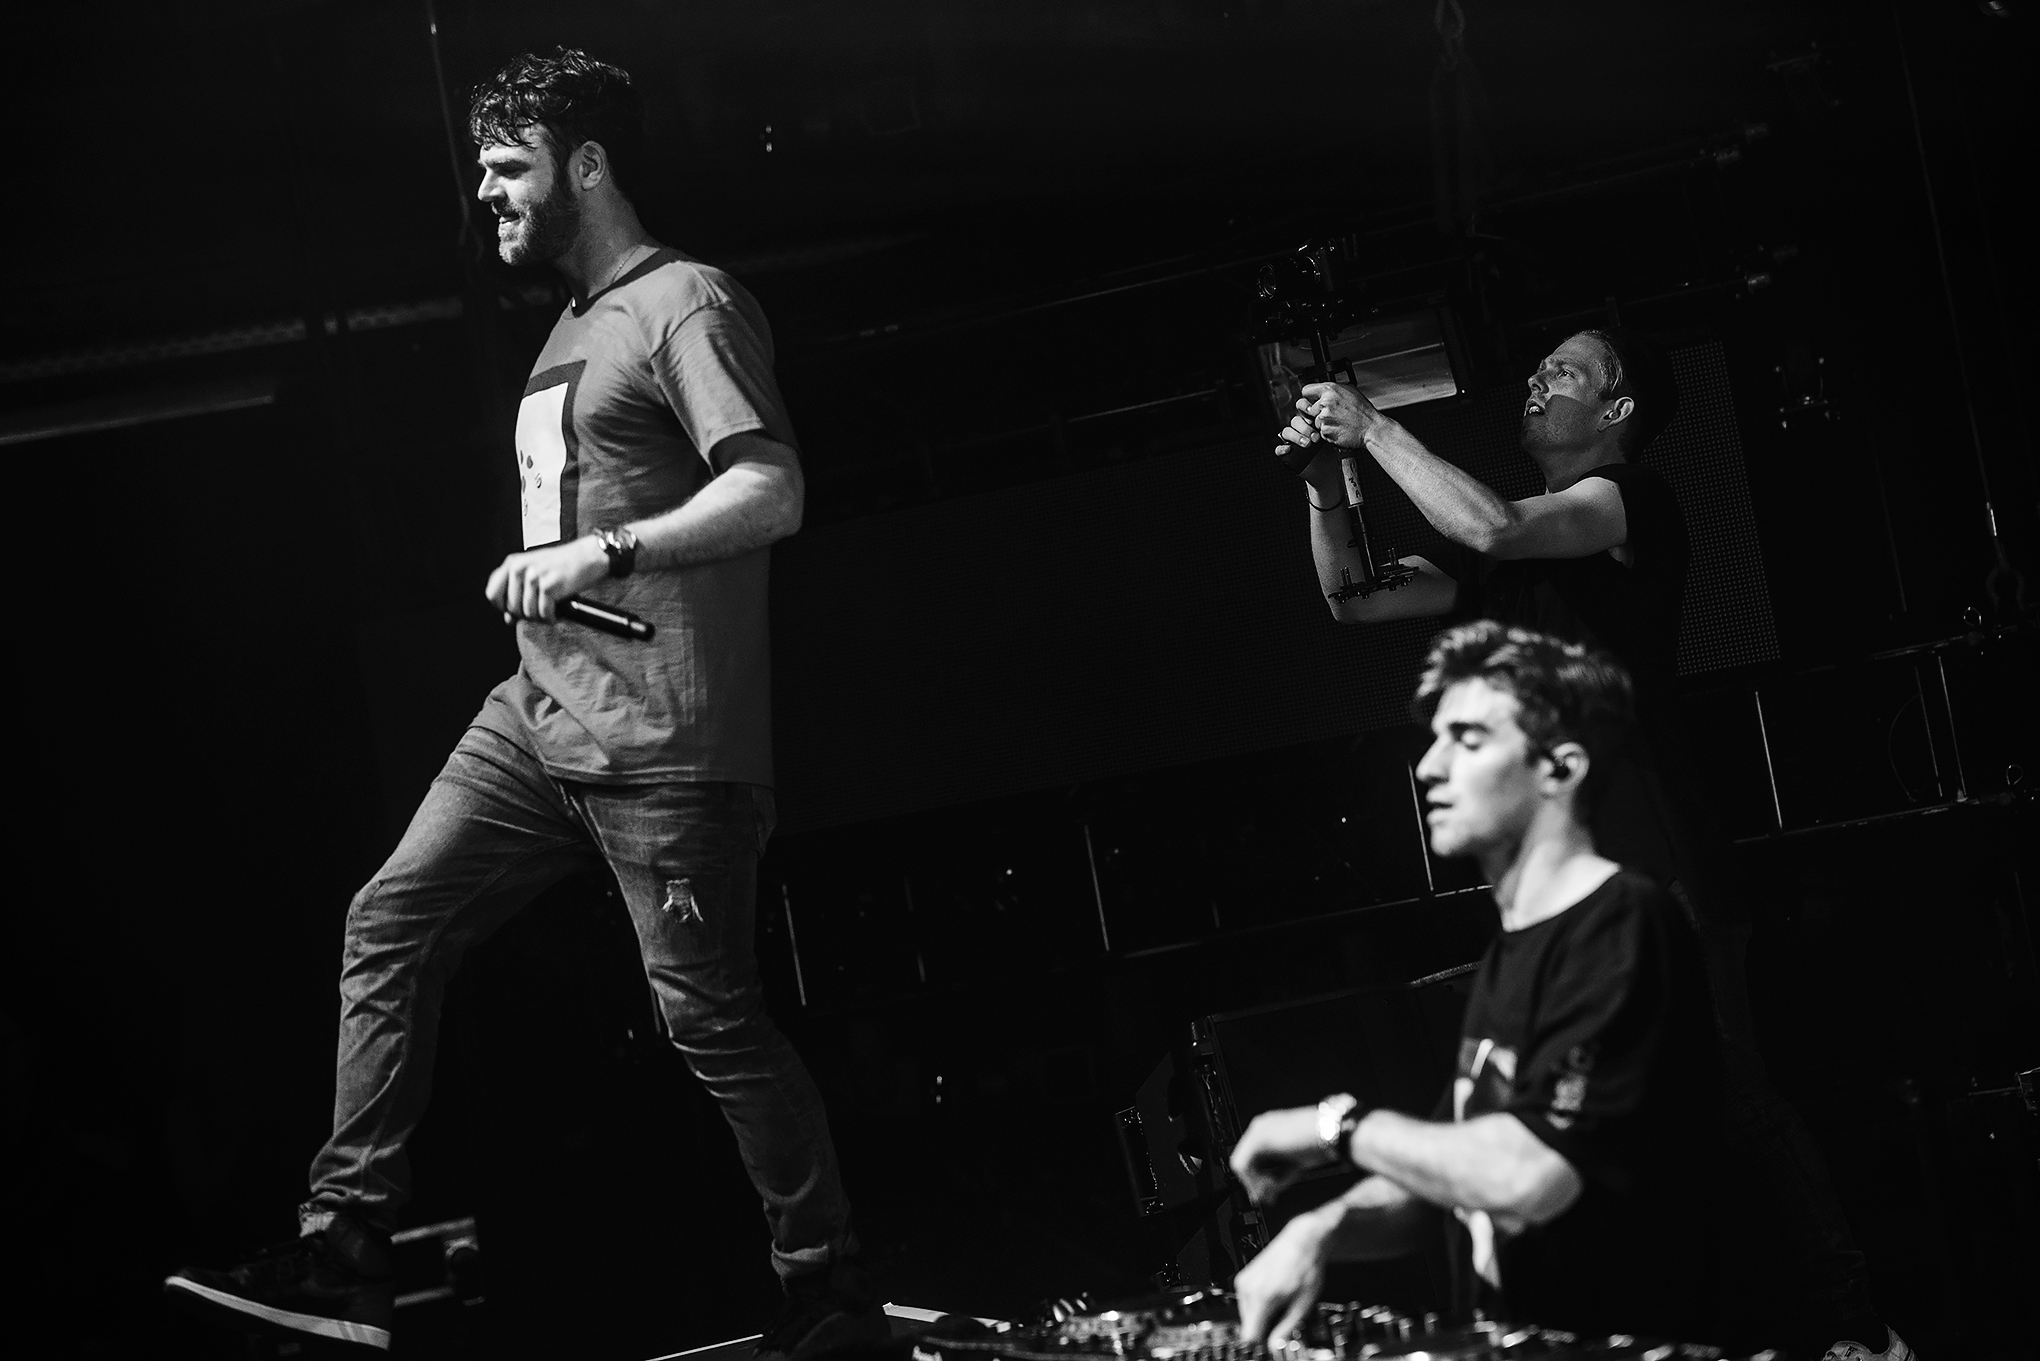 Chainsmokers-Cologne-Show_0747-med (2).jpg